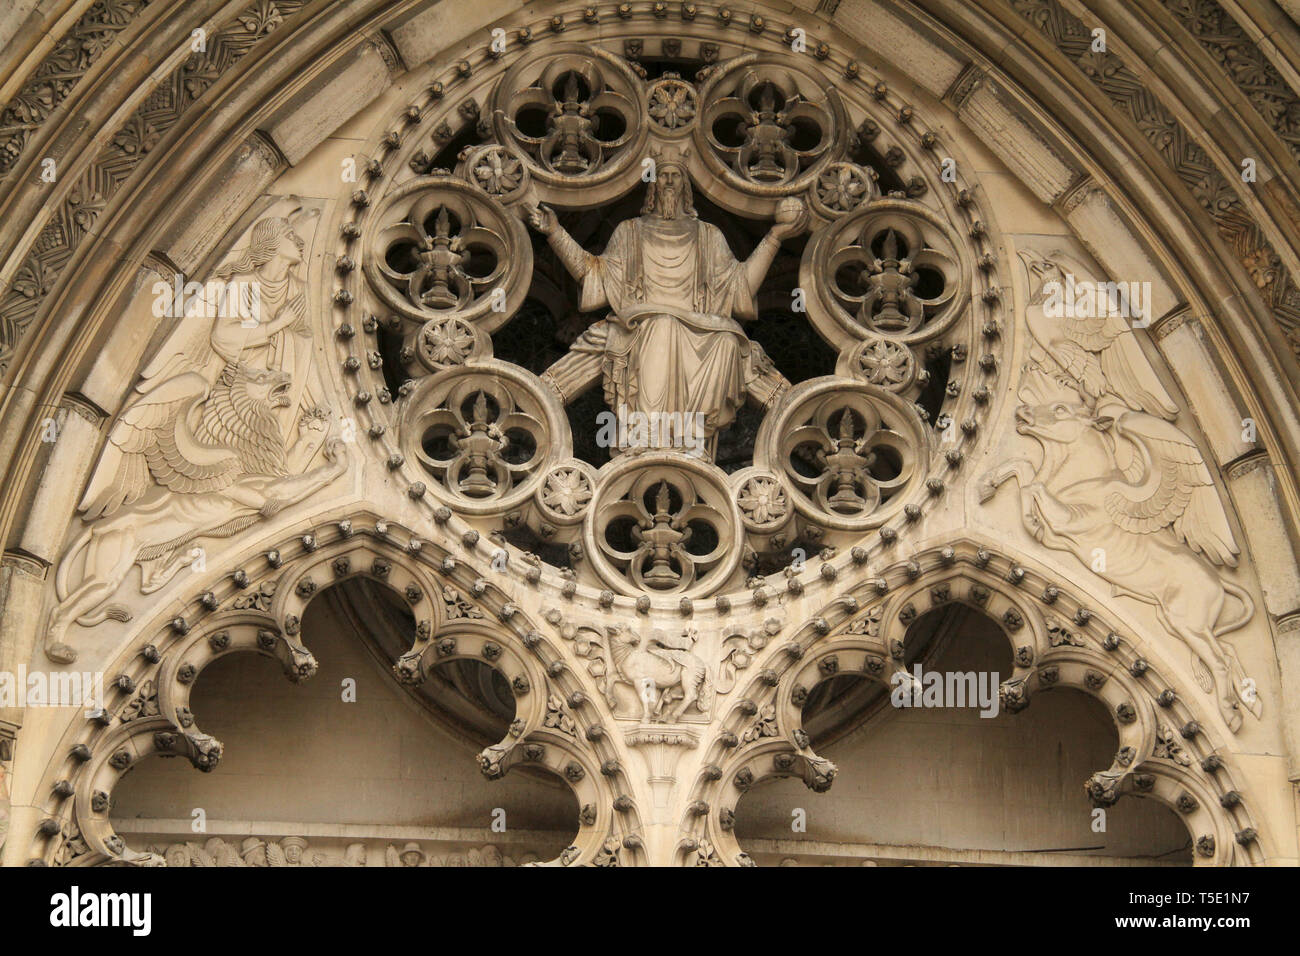 Architectural details on the facade of Cathedral of St. John the Divine in Manhattan, NYC, USA - Stock Image